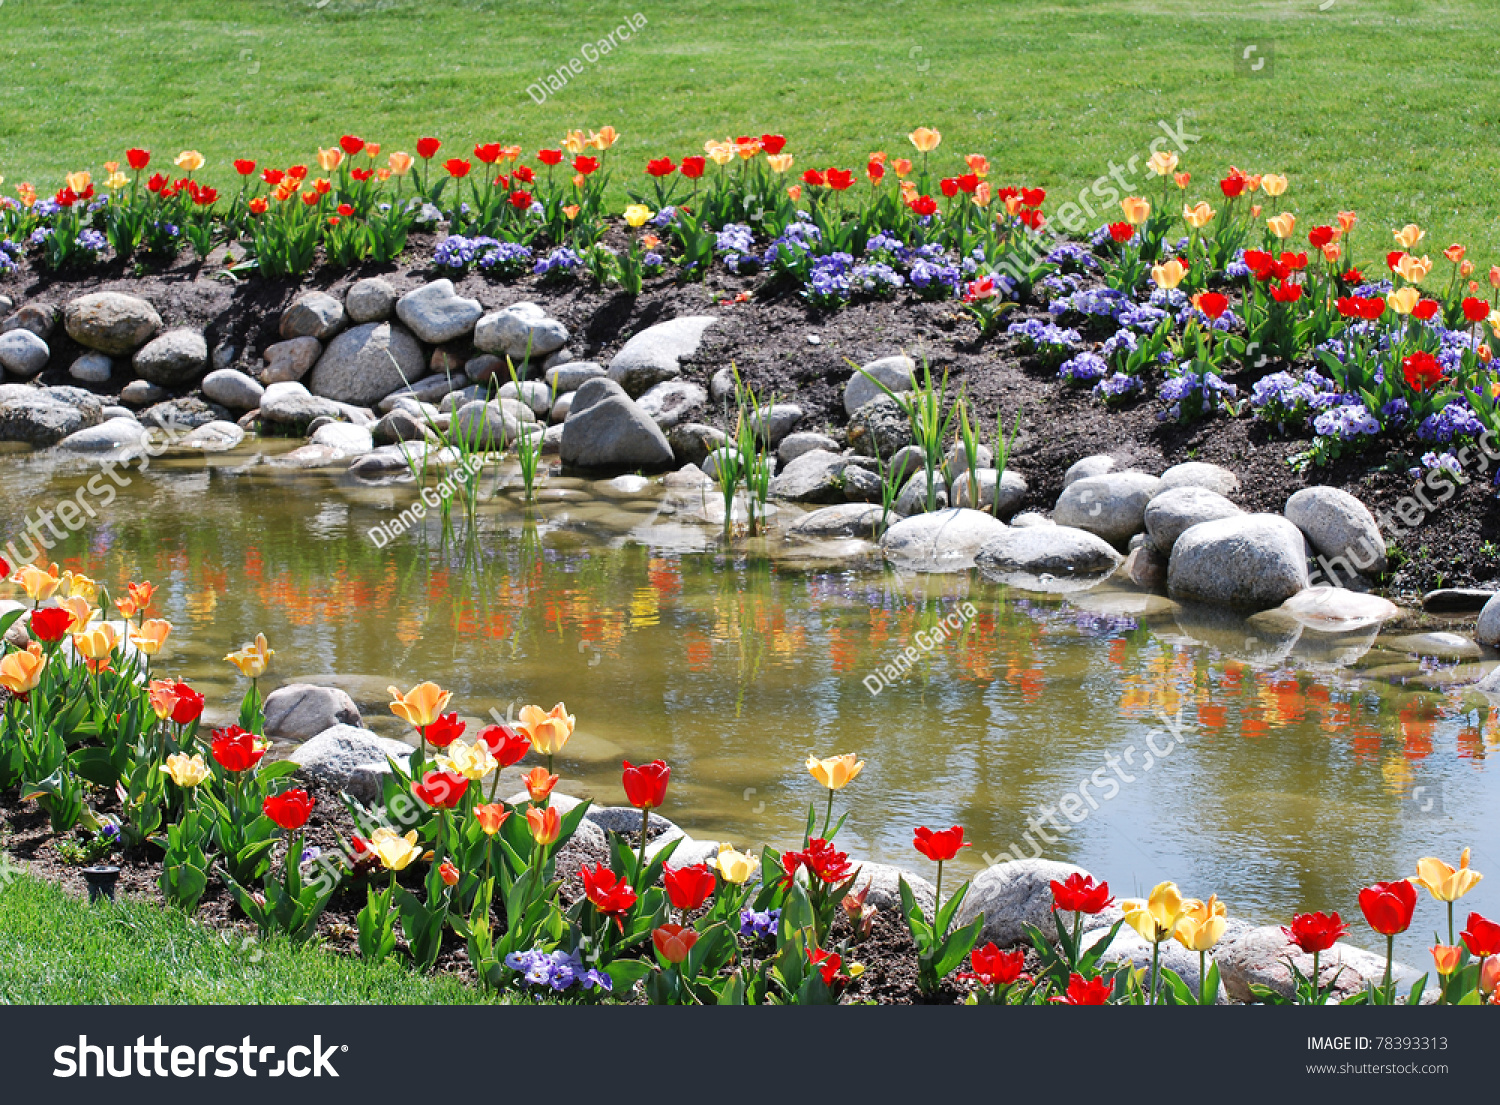 Brightly Colored Red And Yellow Tulips With Rocks